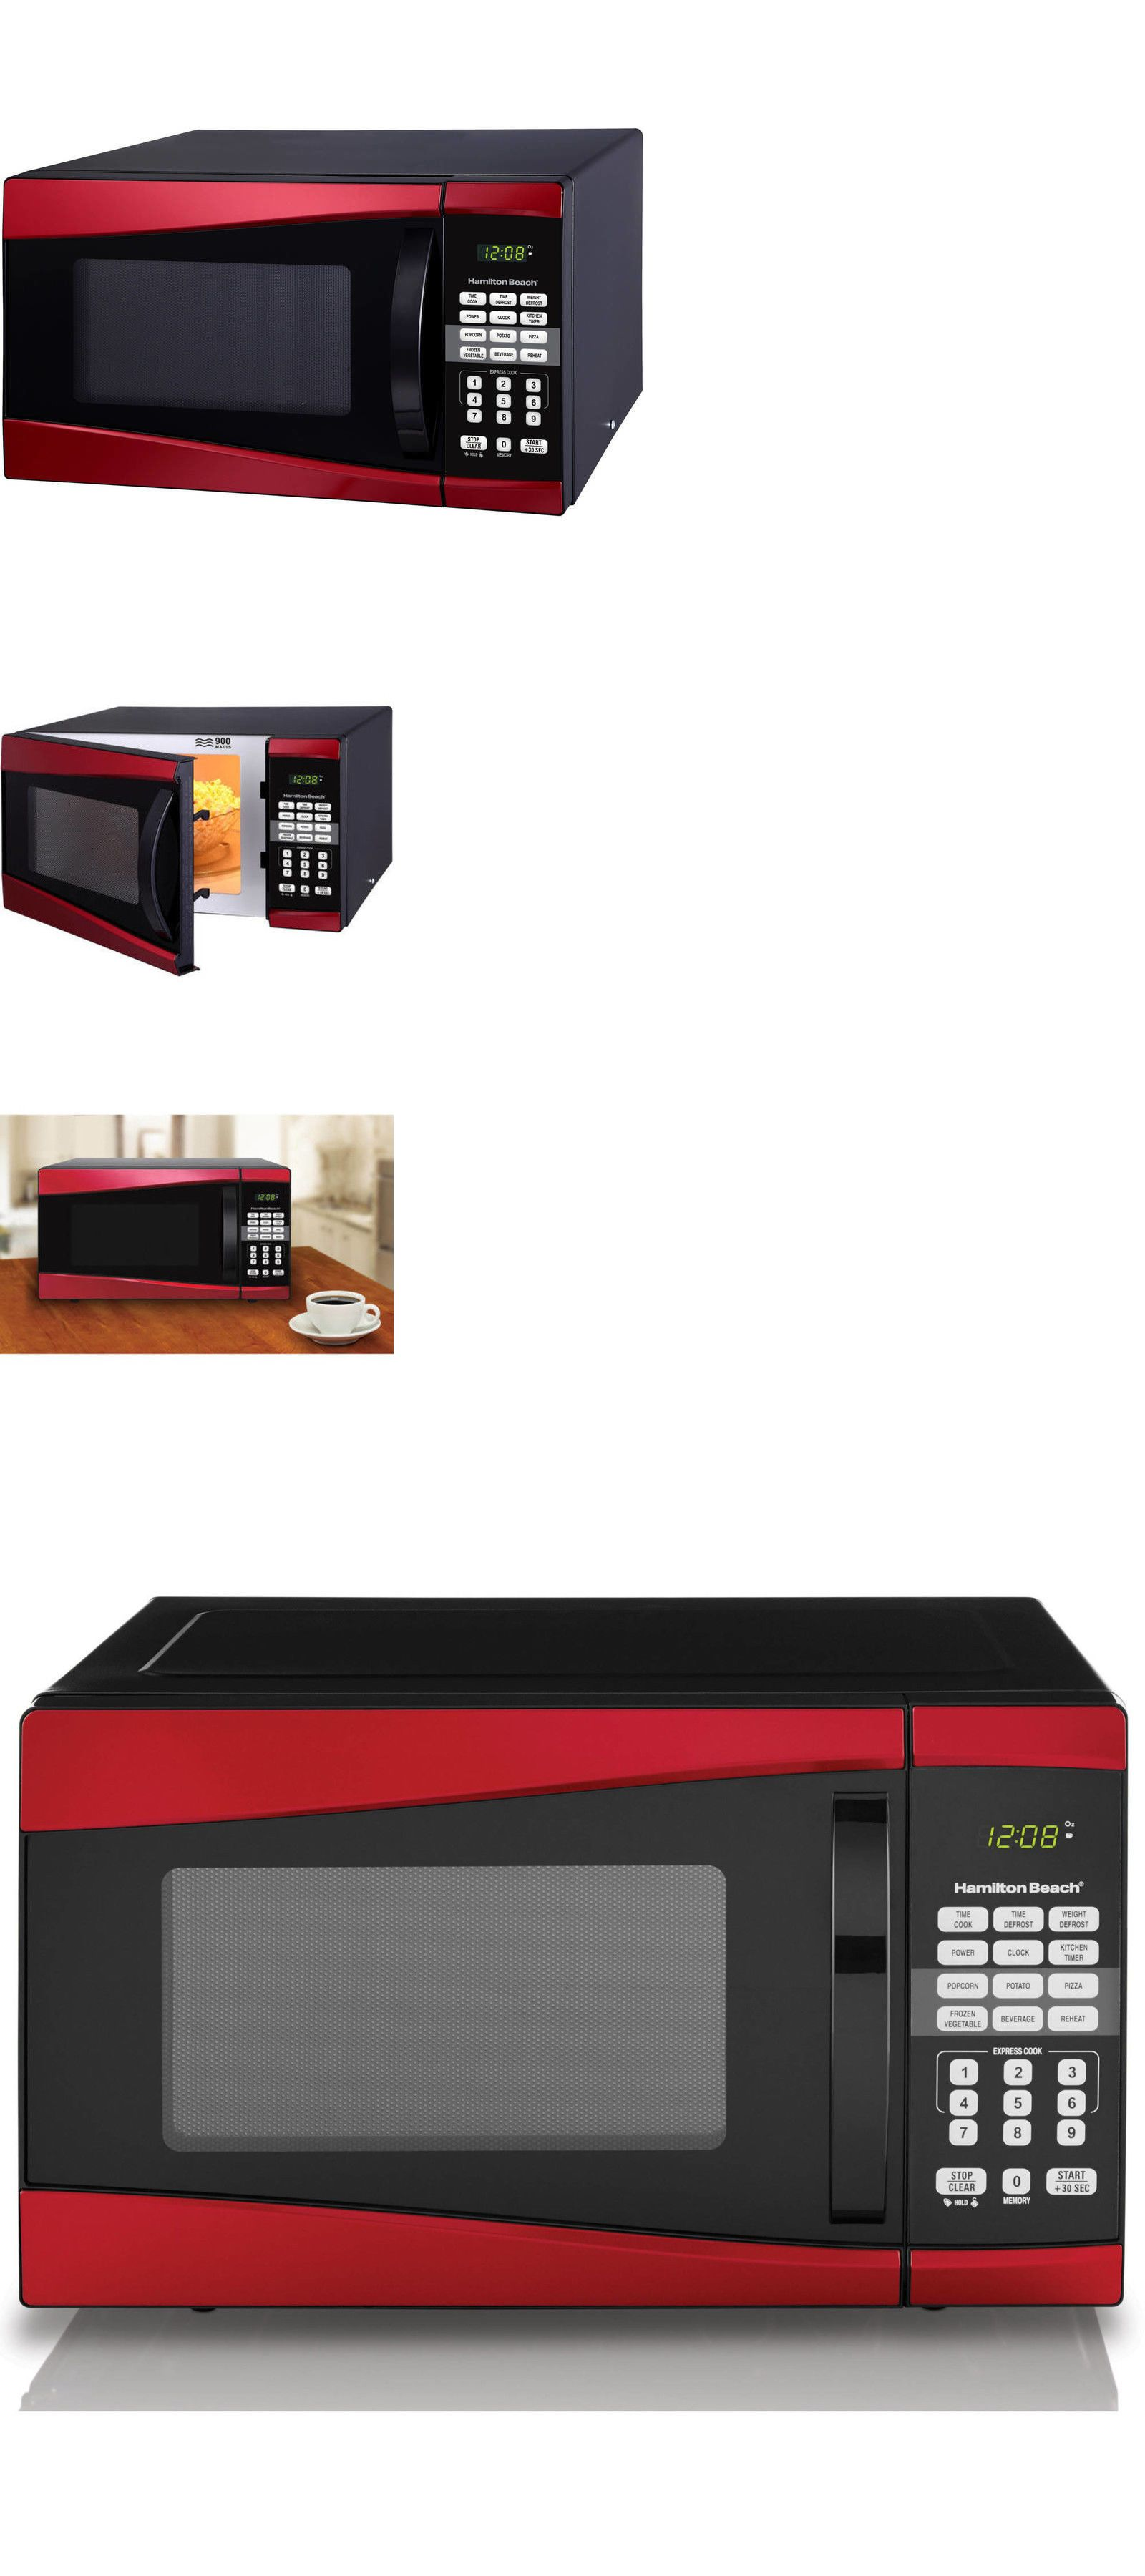 Microwave Ovens 150140 Low Profile Rv Mini Small Best Compact